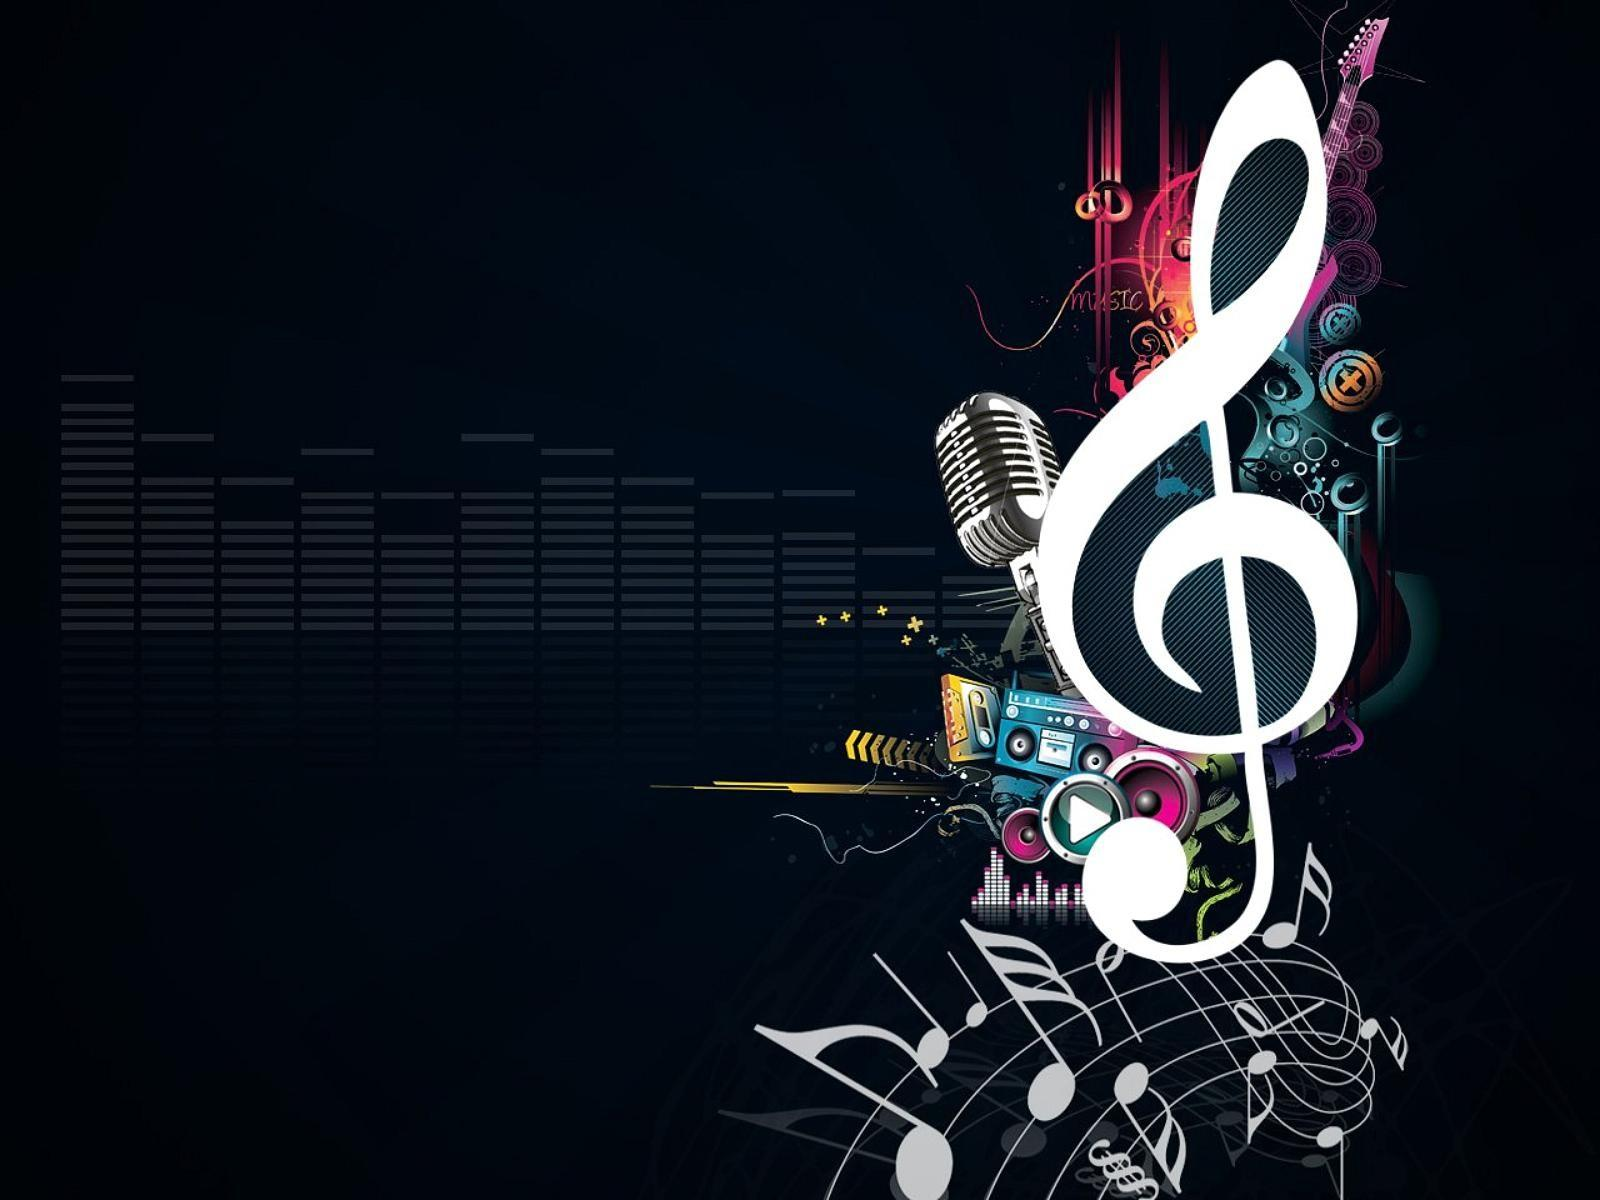 Music Wallpapers, CDH245 High Quality Wallpapers For Desktop And Mobile